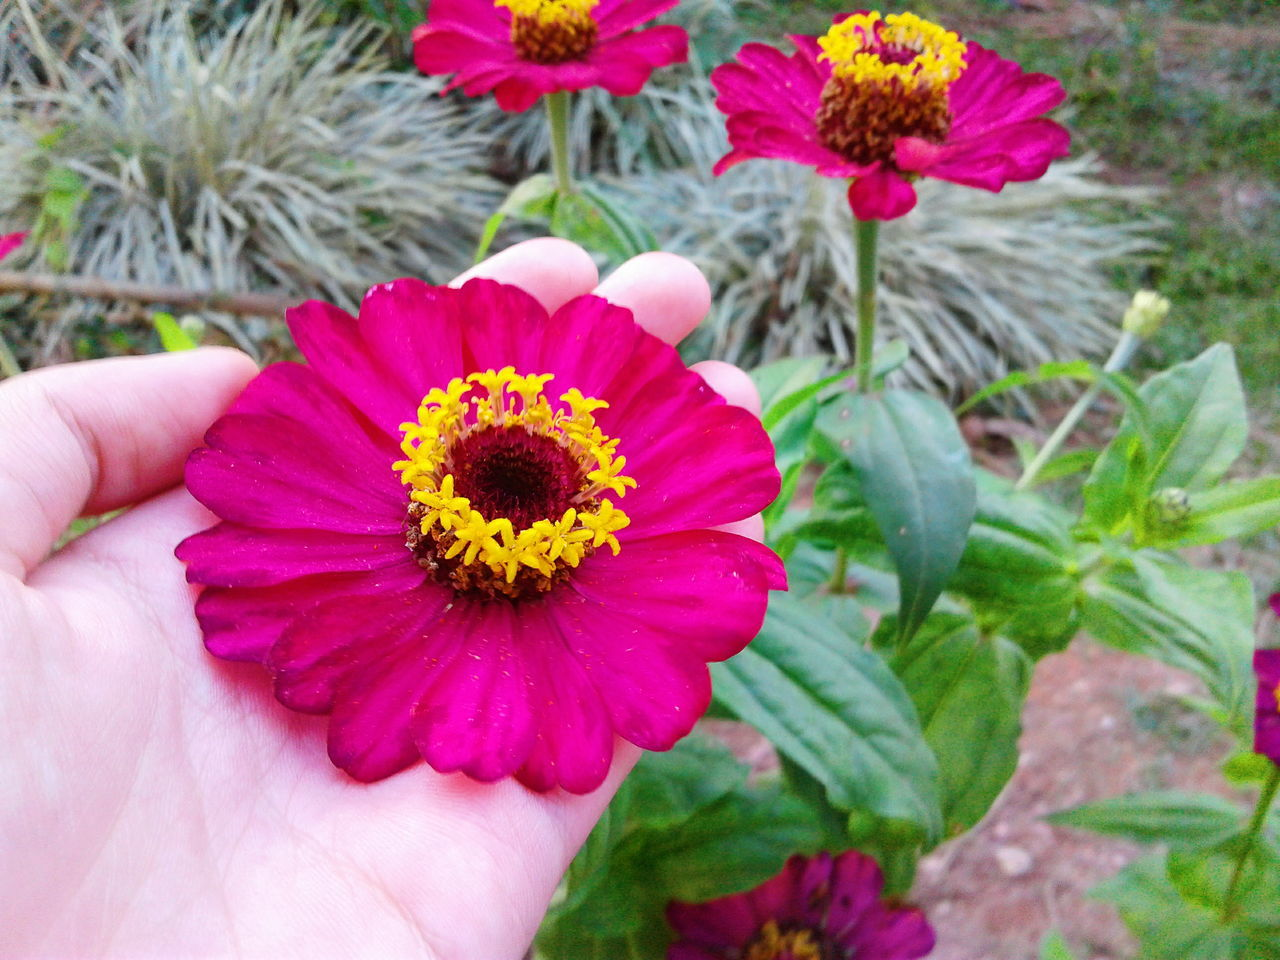 flower, petal, flower head, freshness, fragility, human hand, nature, beauty in nature, outdoors, human body part, holding, growth, plant, real people, pollen, day, one person, blooming, close-up, zinnia, people